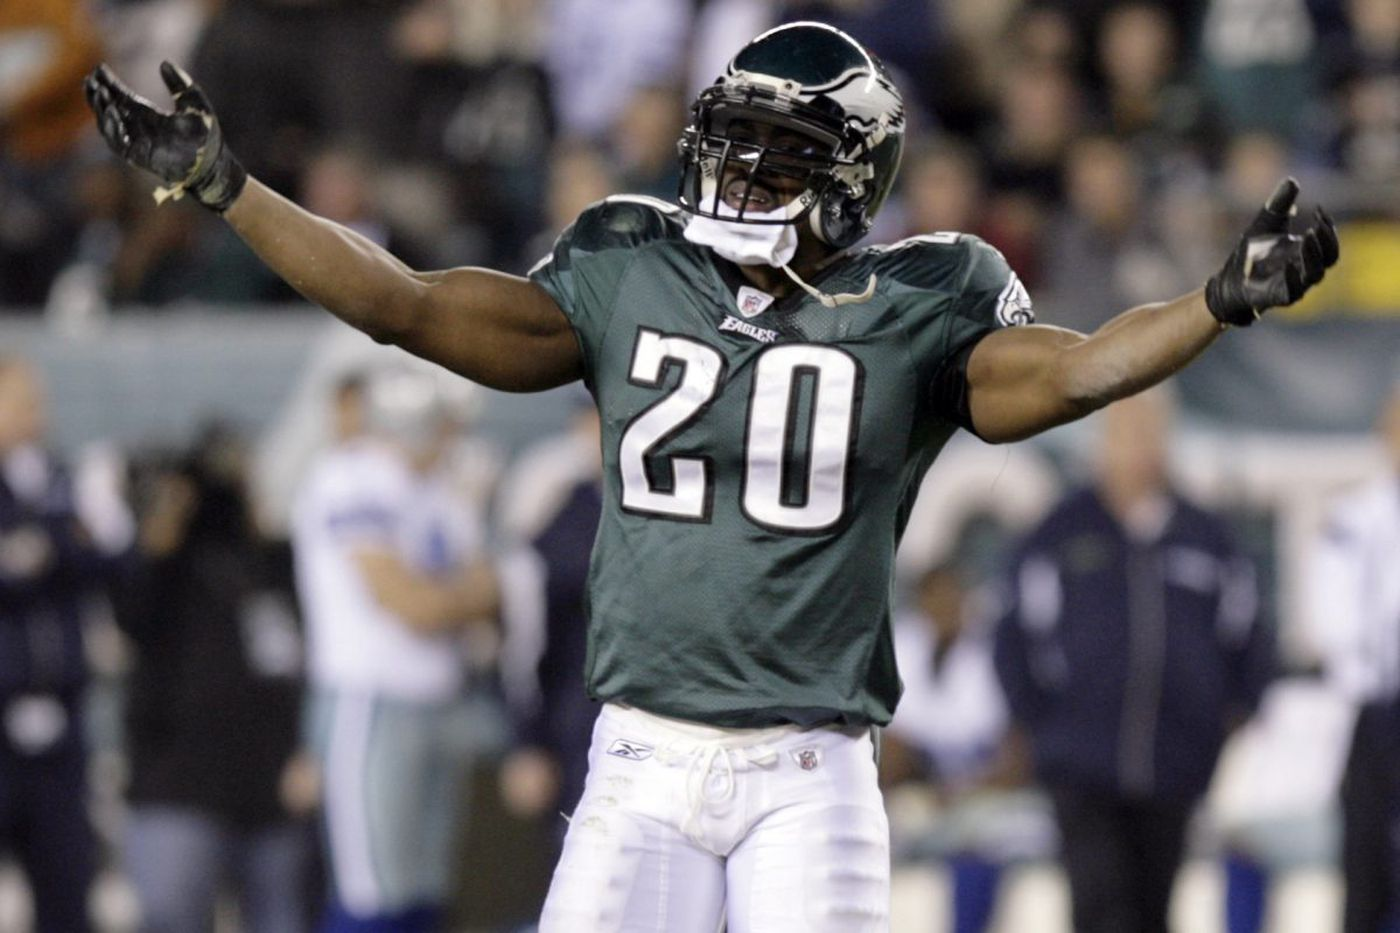 Brian Dawkins, Terrell Owens are Hall of Fame semifinalists